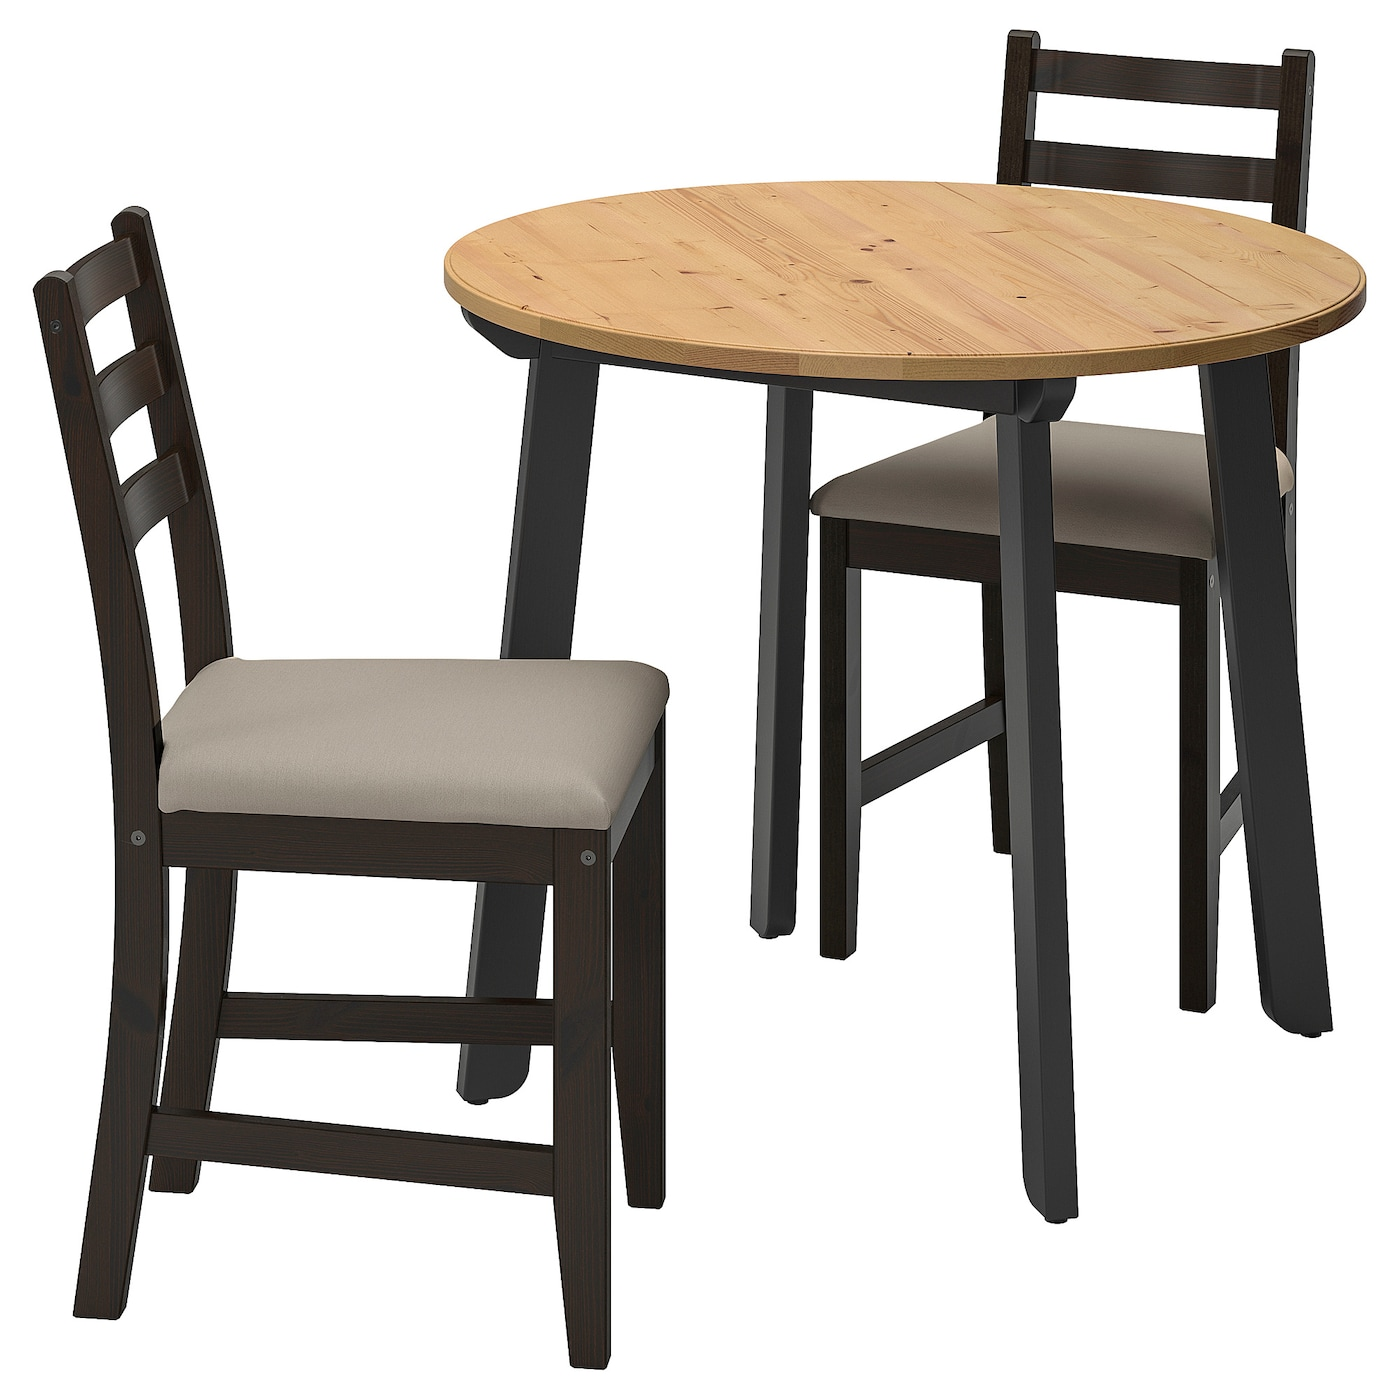 GAMLARED / LERHAMN Table And 2 Chairs